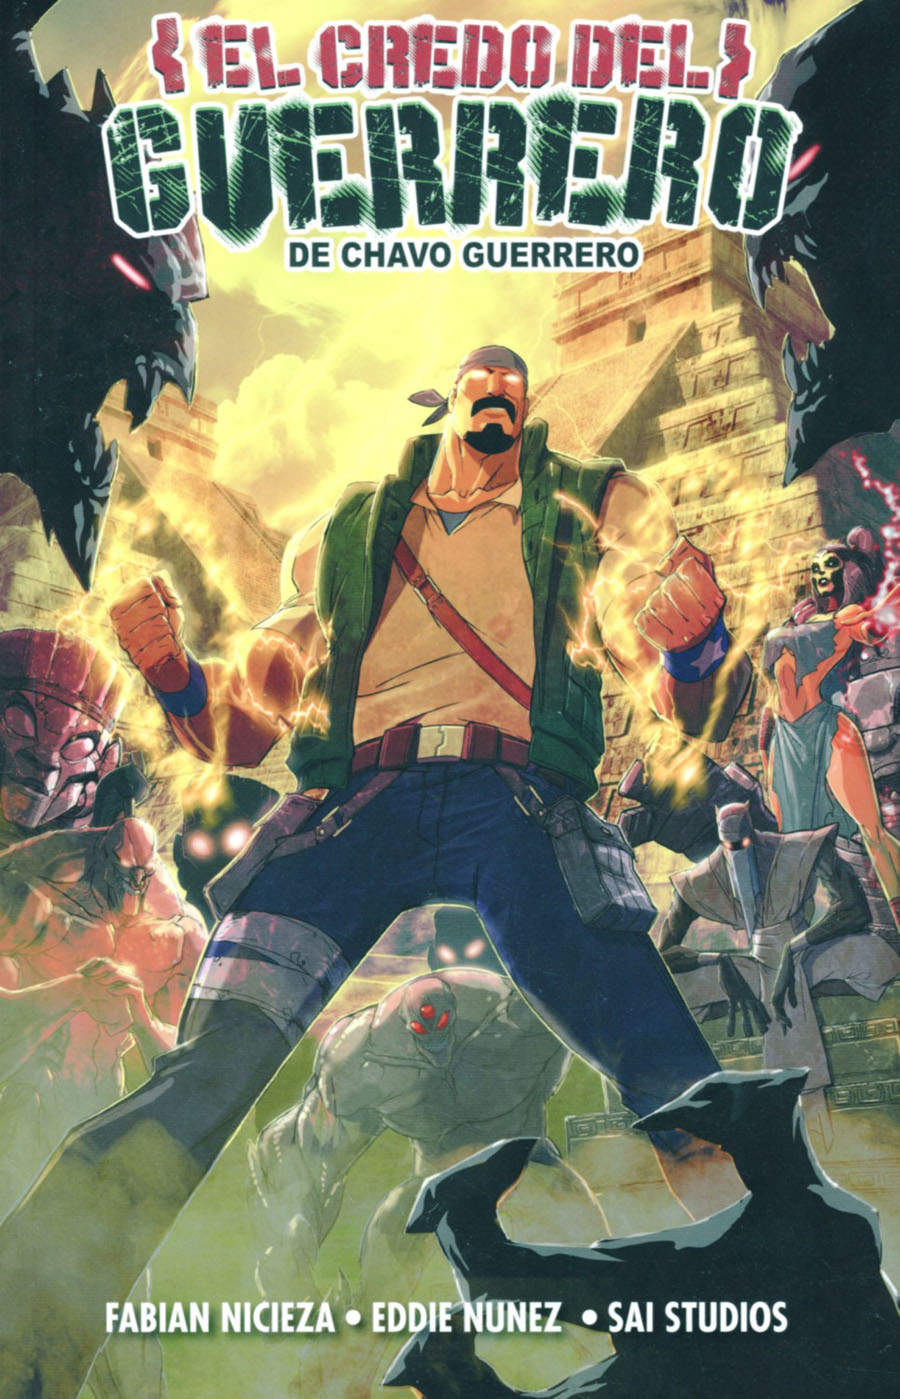 Chavo Guerreros Warriors Creed TP Spanish Edition (De Chavo Guerrero El Credo Del)